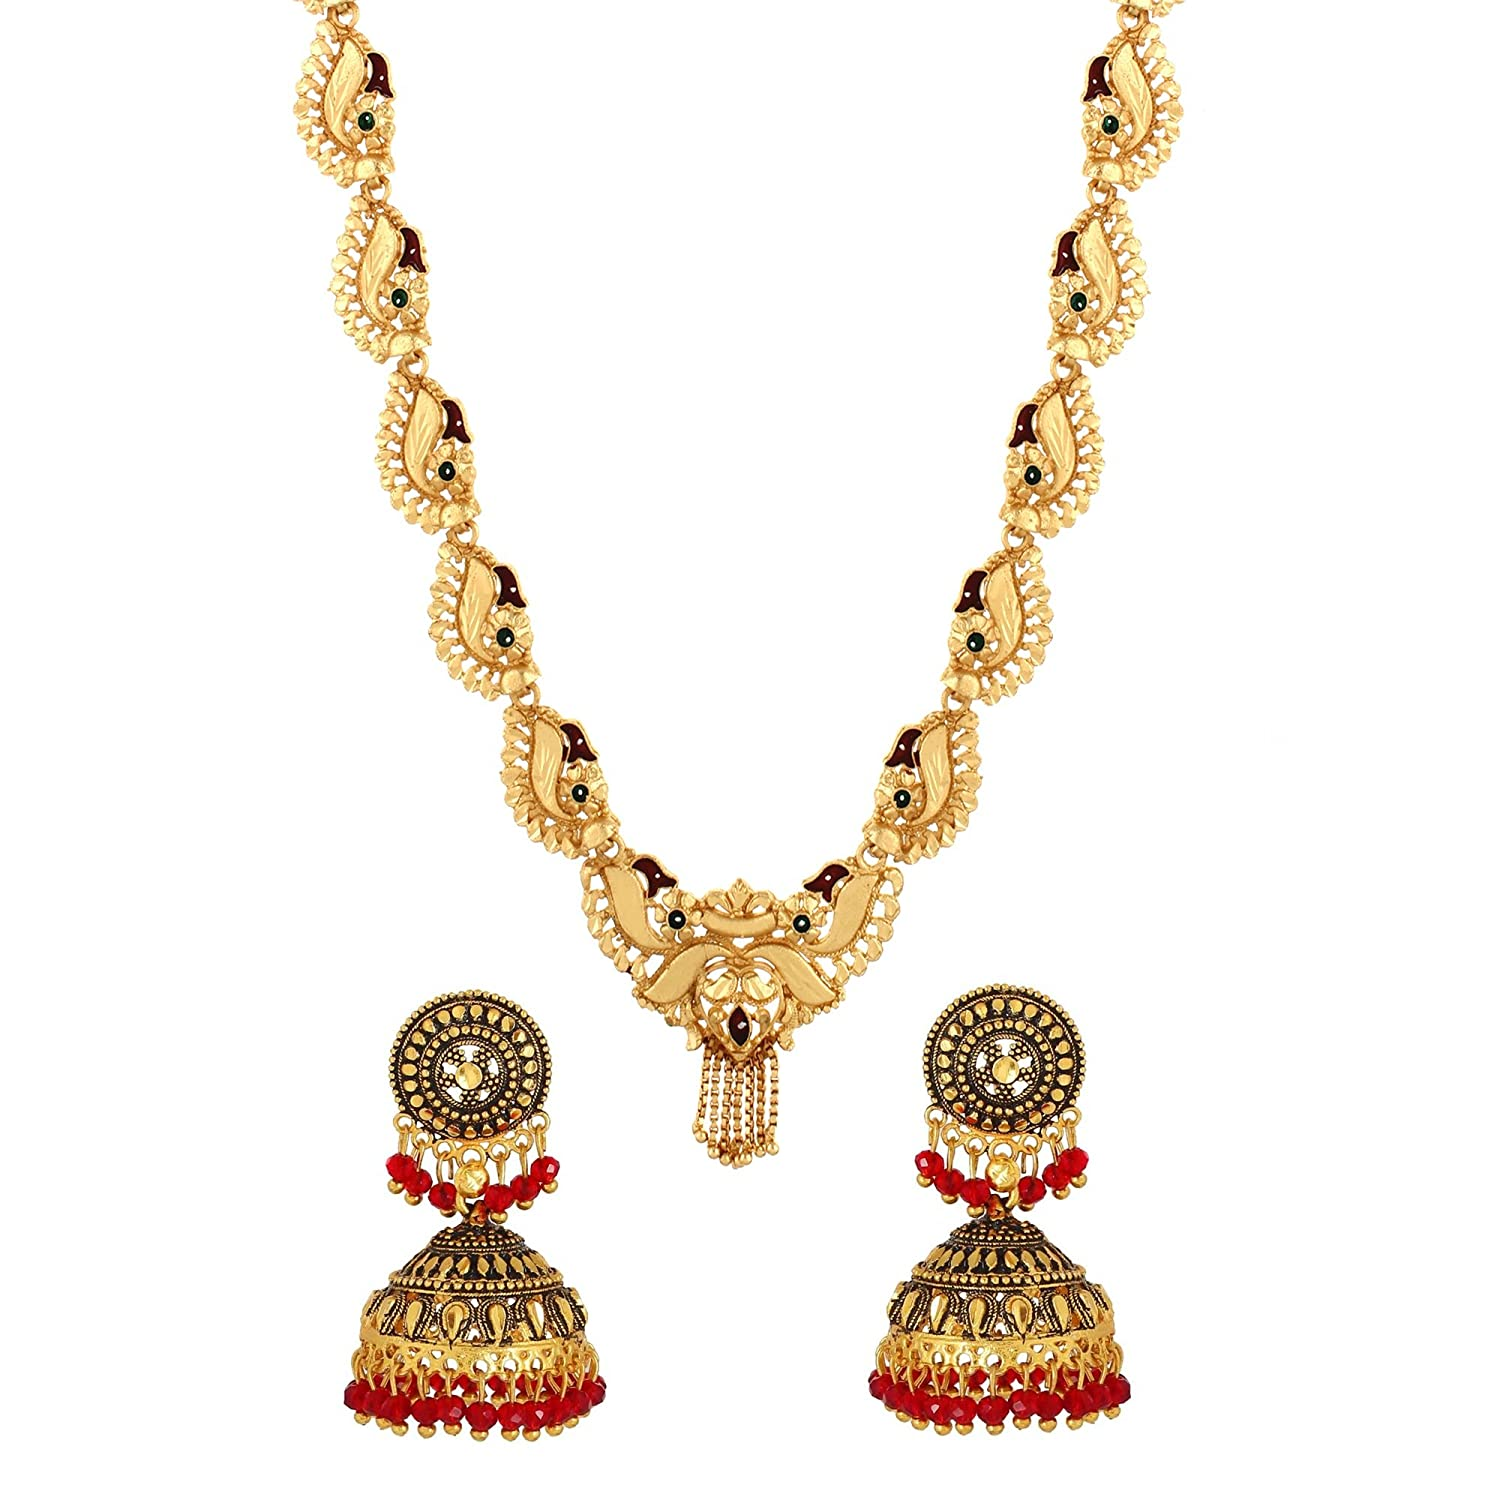 ad7eb4866 Buy Gold Nera Necklace Set Gold Plated with Anique Jhumka Earrings for Women  Girls Online at Low Prices in India | Amazon Jewellery Store - Amazon.in